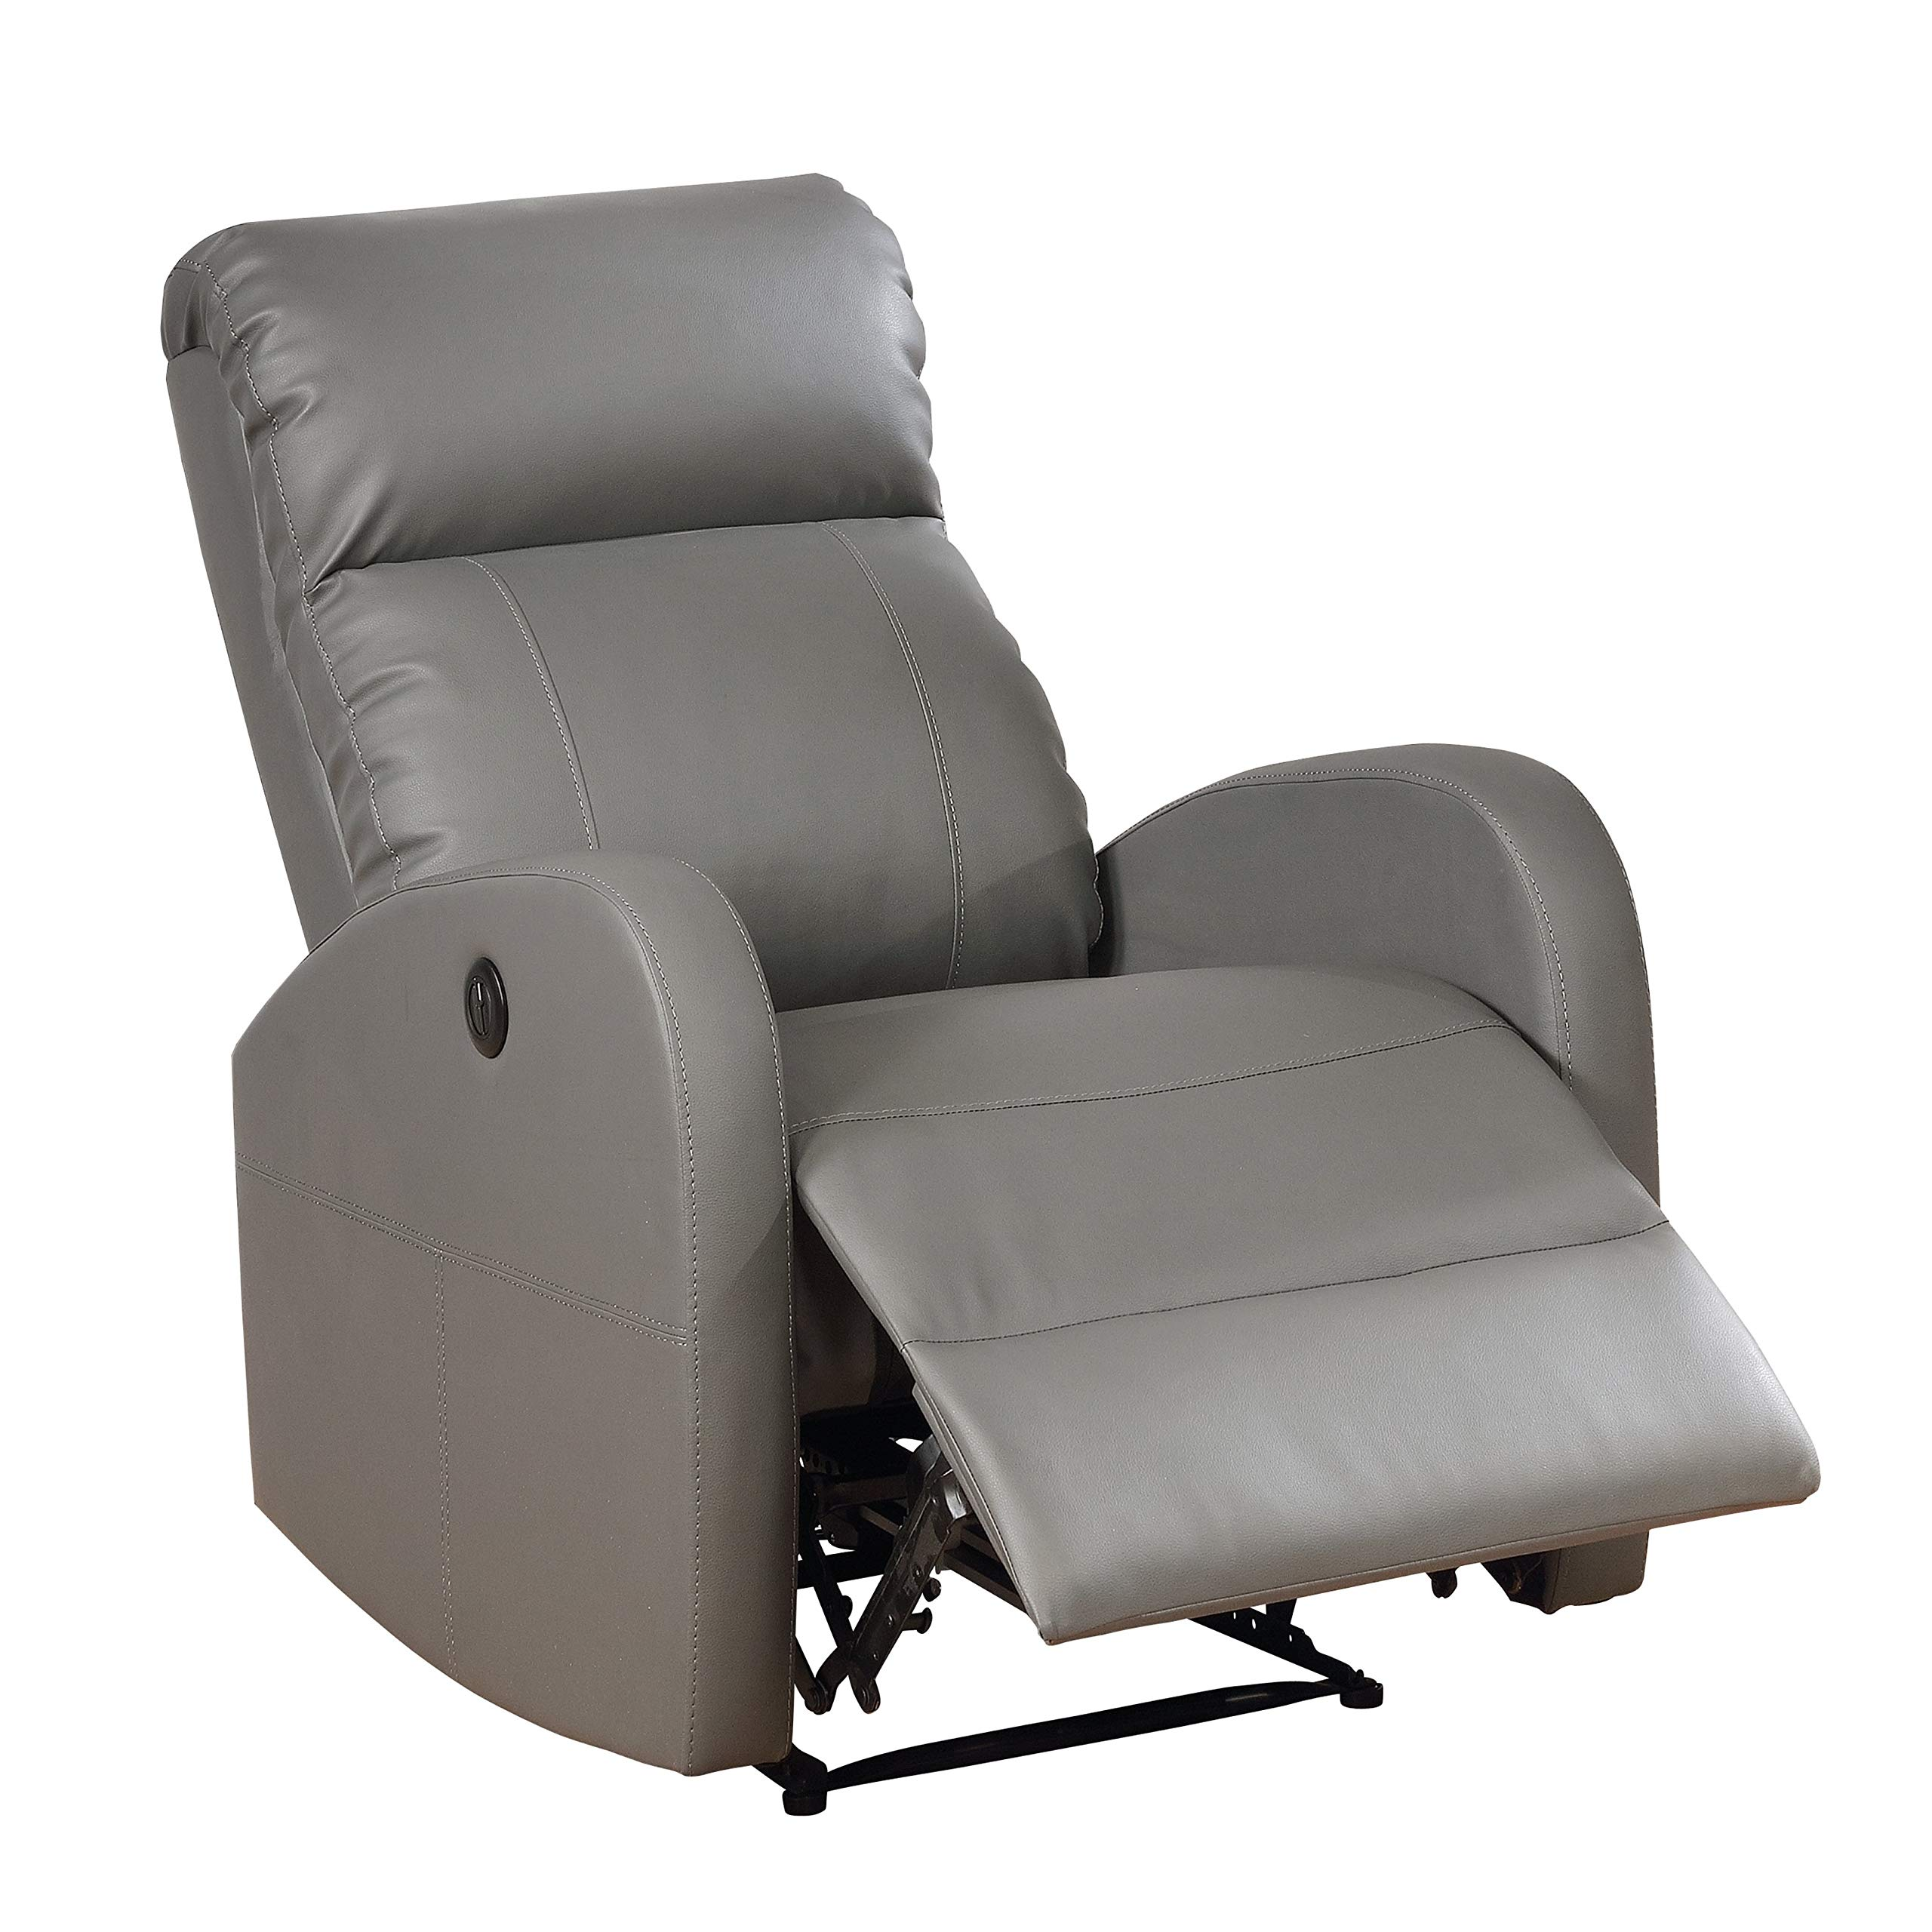 AC Pacific Modern Faux Leather Small Powered Reading Recliner Grey by AC Pacific